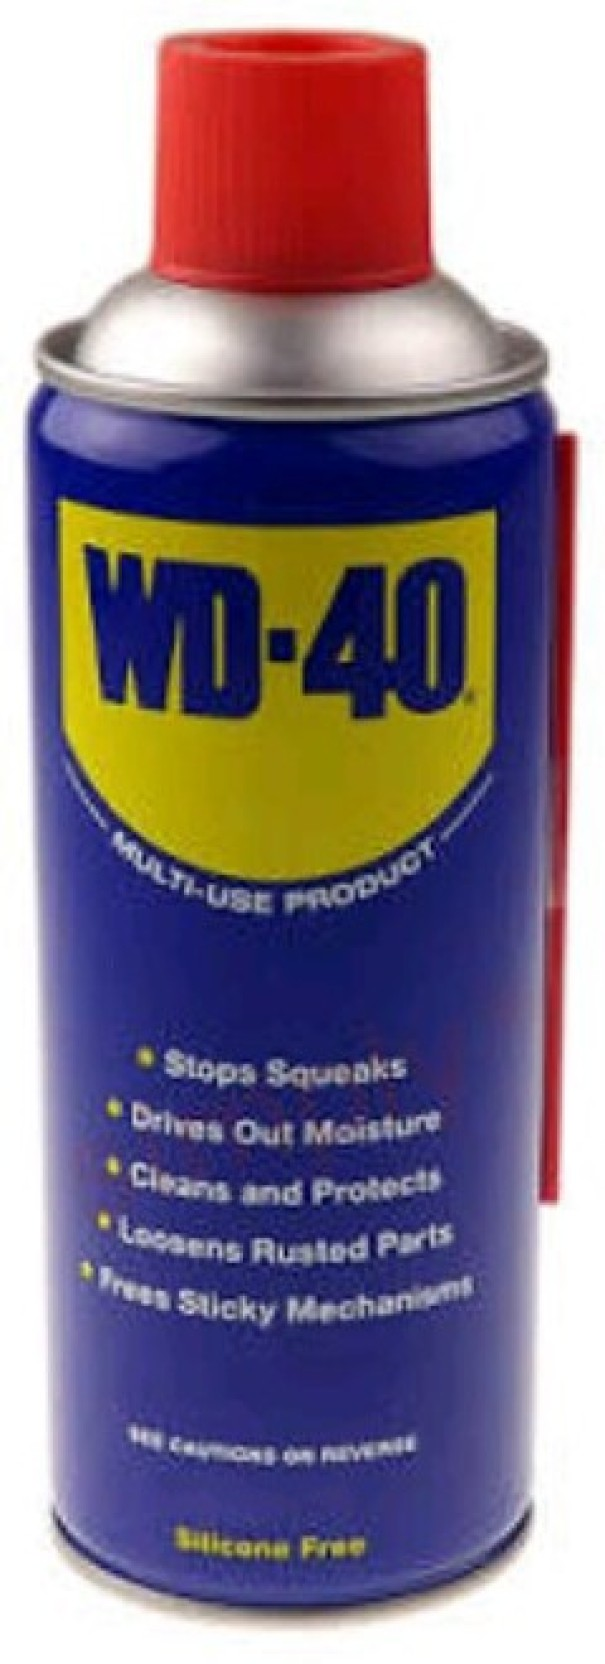 Wd40 Wd 40 400 Gm With Trigger Spray Rust Removal Aerosol Belt Dressing Specialist Add To Cart